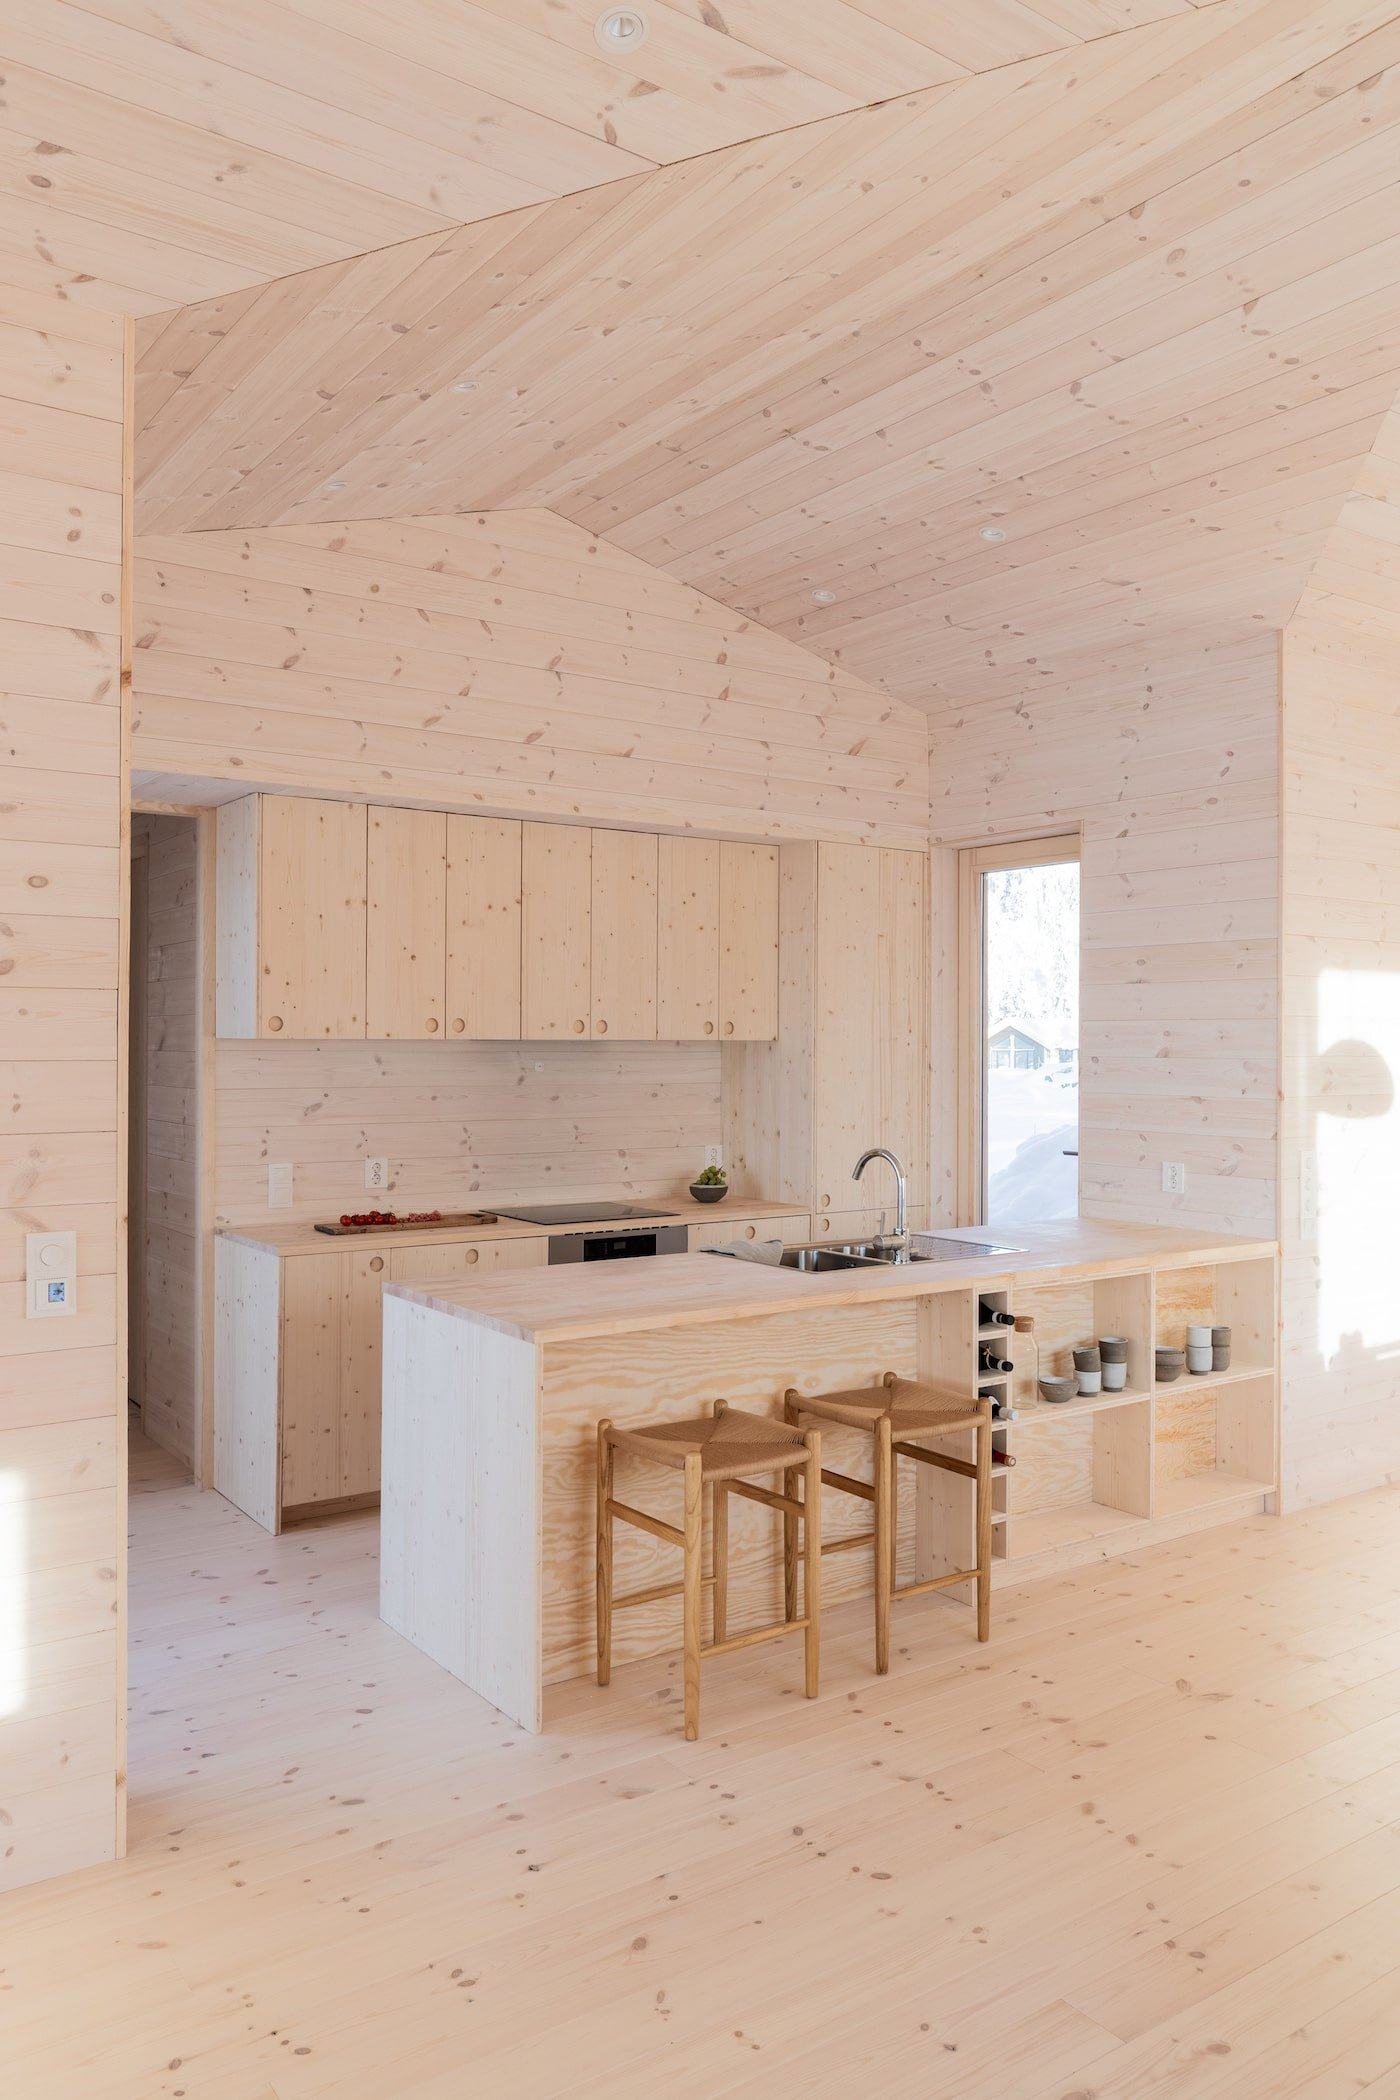 All timber kitchen with timber bench top in Kvitfjell Cabin